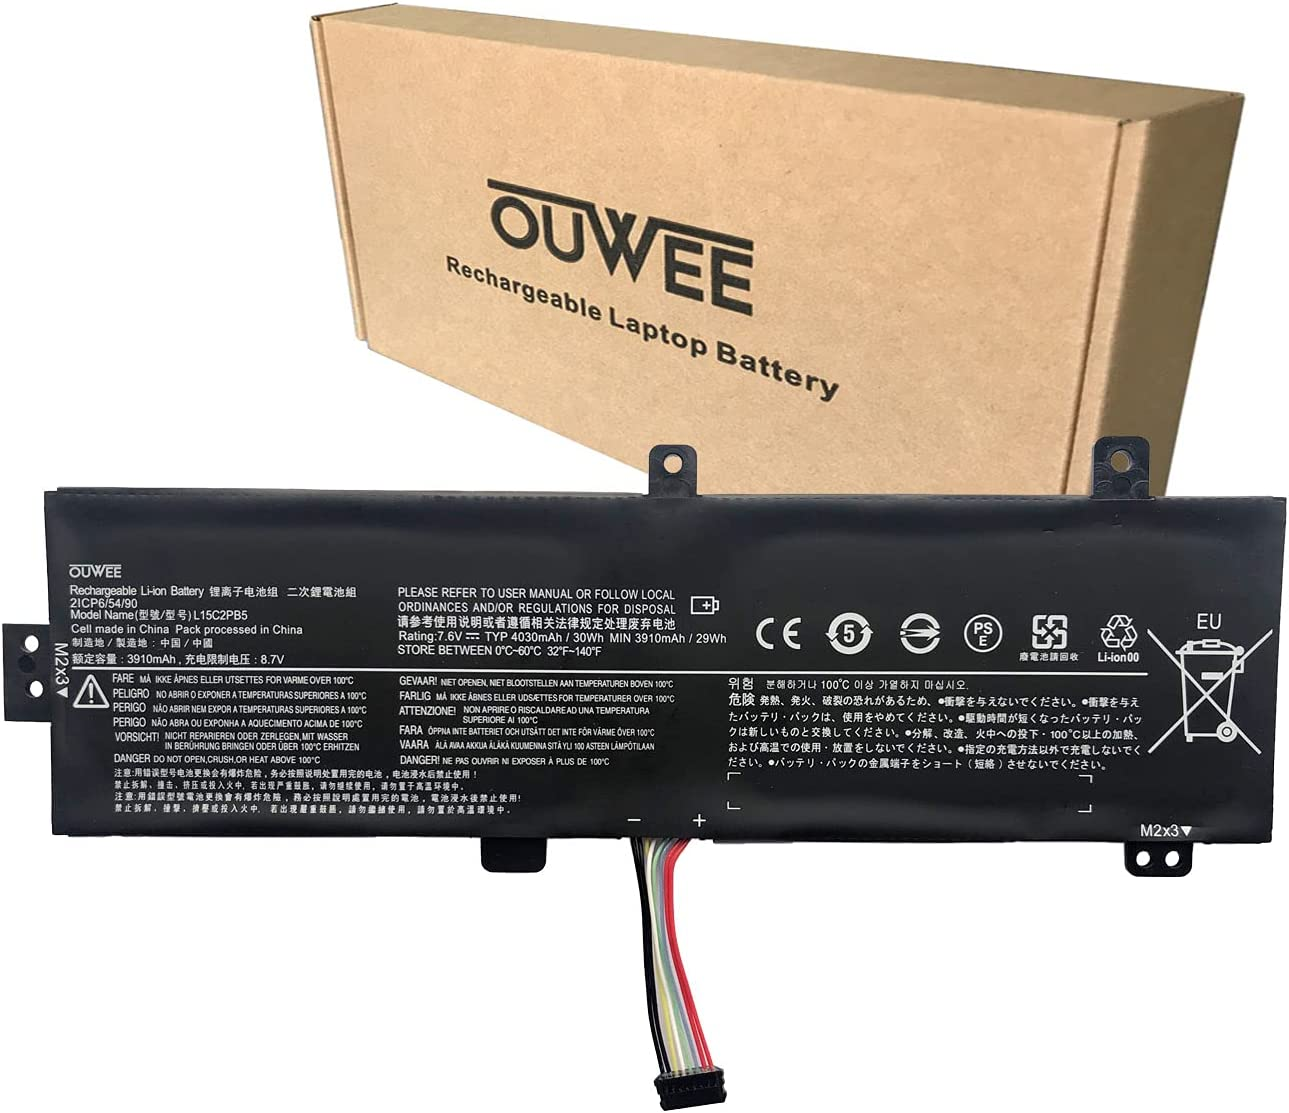 OUWEE L15C2PB5 Laptop Battery Compatible with Lenovo IdeaPad 510-15ISK/15IKB 310-15ABR/15IAP/15IKB/15ISK 310 Touch-15IKB/15ISK Series L15M2PB5 L15M2PB3 L15C2PB3 L15C2PB7 L15L2PB4 L15L2PB5 L15S2TB0